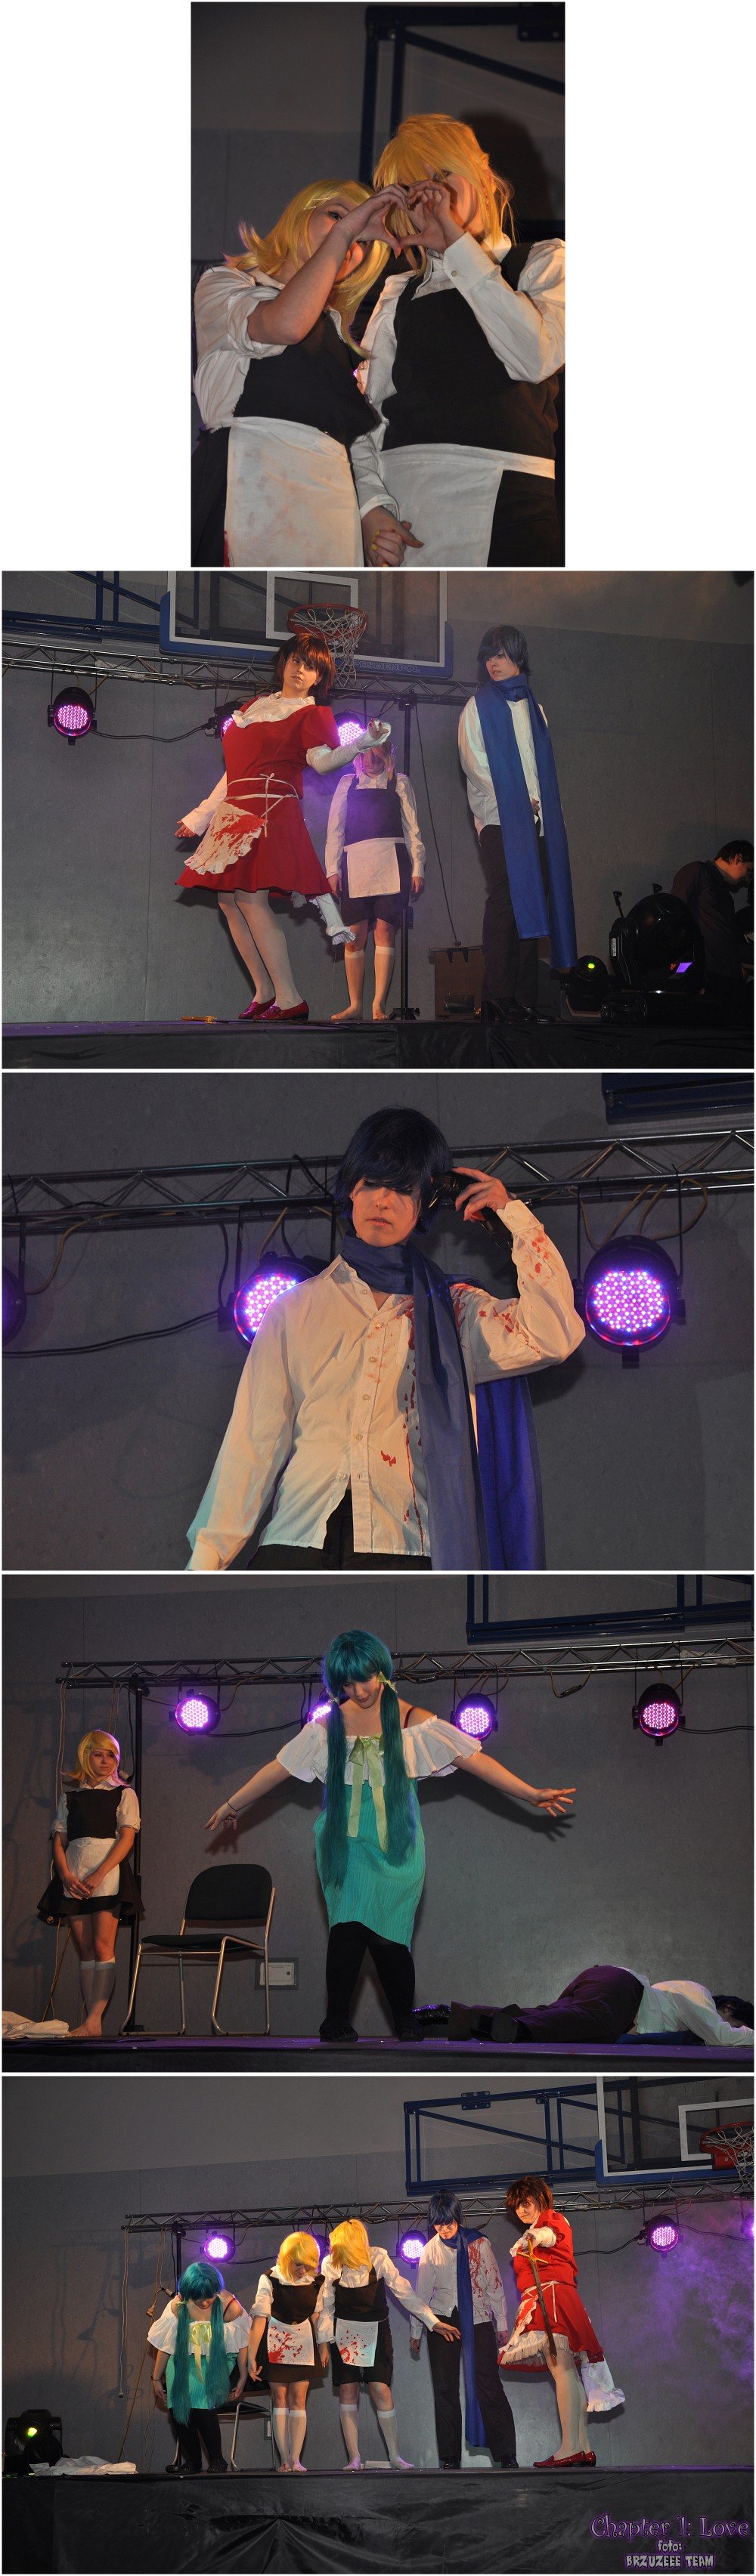 Chapter 1: Love — cosplay (Mietek, Zbysiu & BRZUZEEE TEAM): Ciupakabra Team (Vocaloid, Alice human sacrifice)